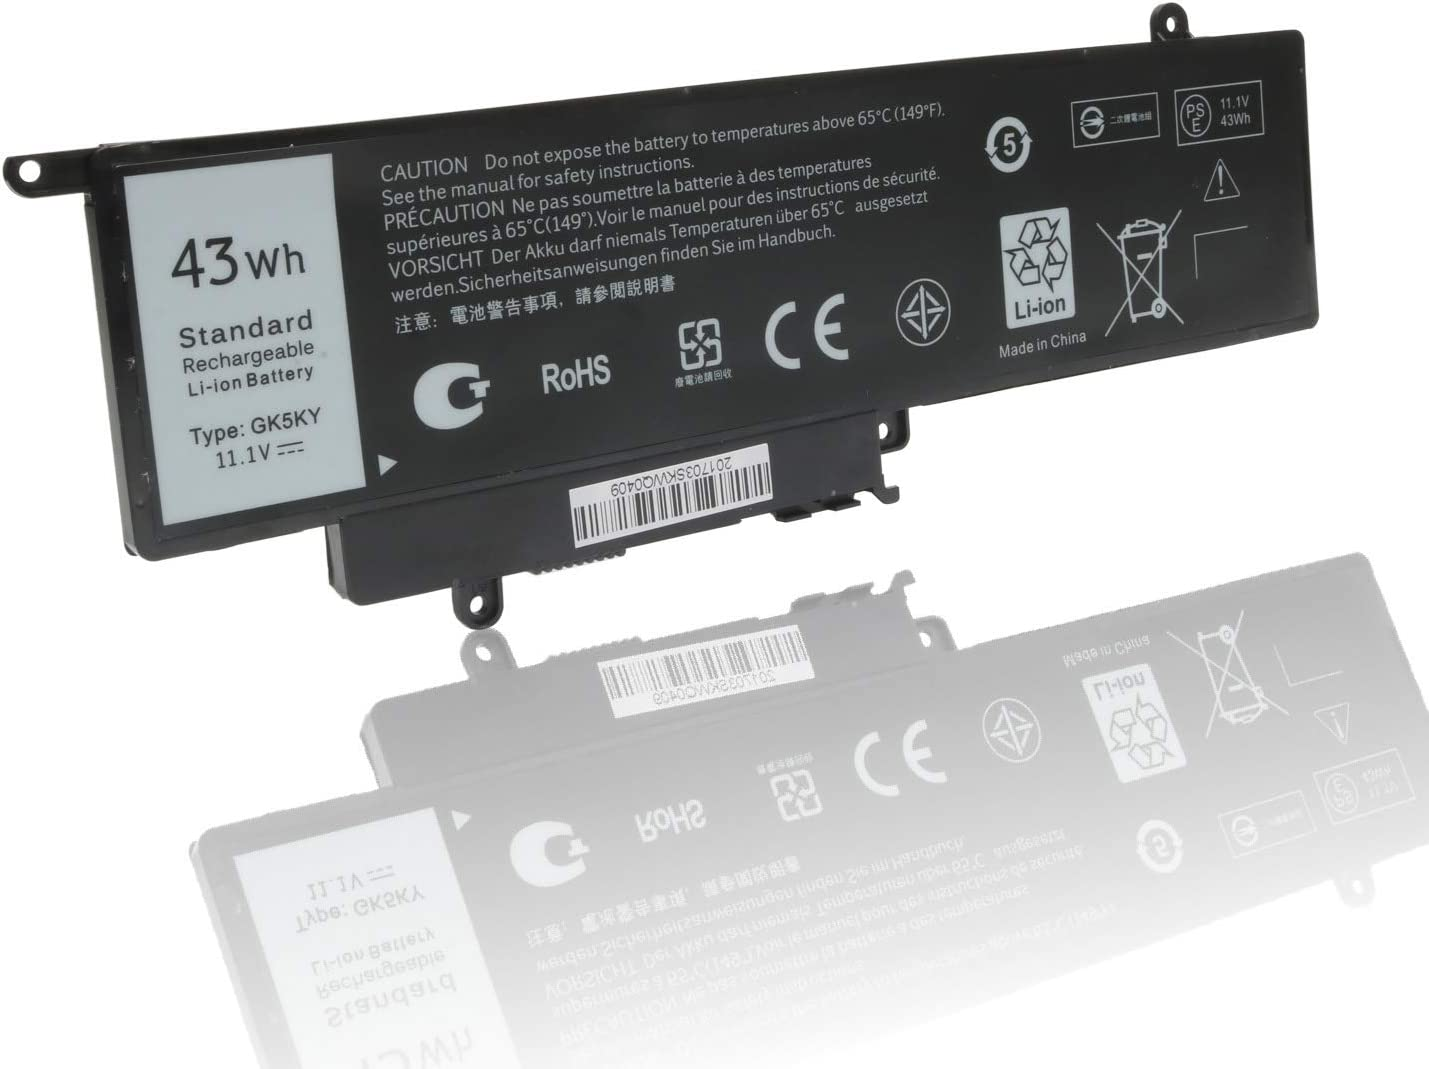 GK5KY 11-3157 Battery Replacement for Dell Inspiron 11 3147 3148 3152 13 7353 7352 7347 7348 7359 15 7558 7568 Series, 04K8YH 092NCT 92NCT 4K8YH P20T 451-BBKK 451-BBPG RHN1C 0WF28 11.1V 43Wh